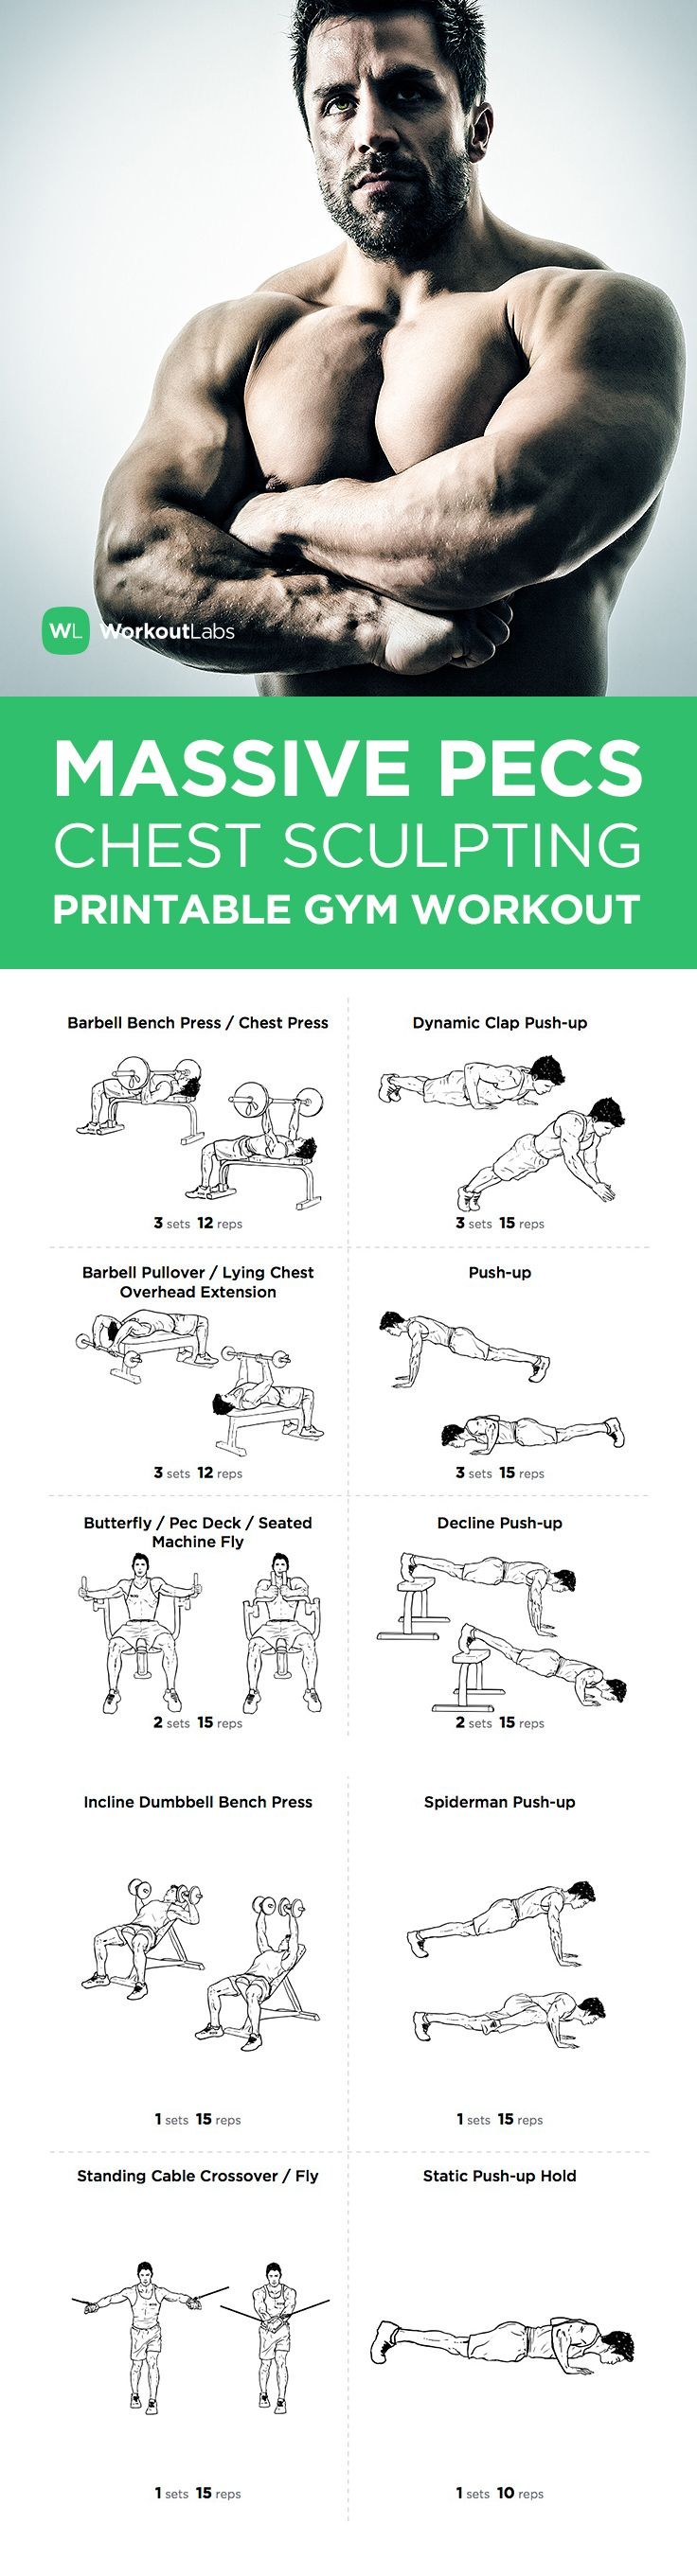 Pin by Cliff on Men's workout | Pinterest | Workout, Chest